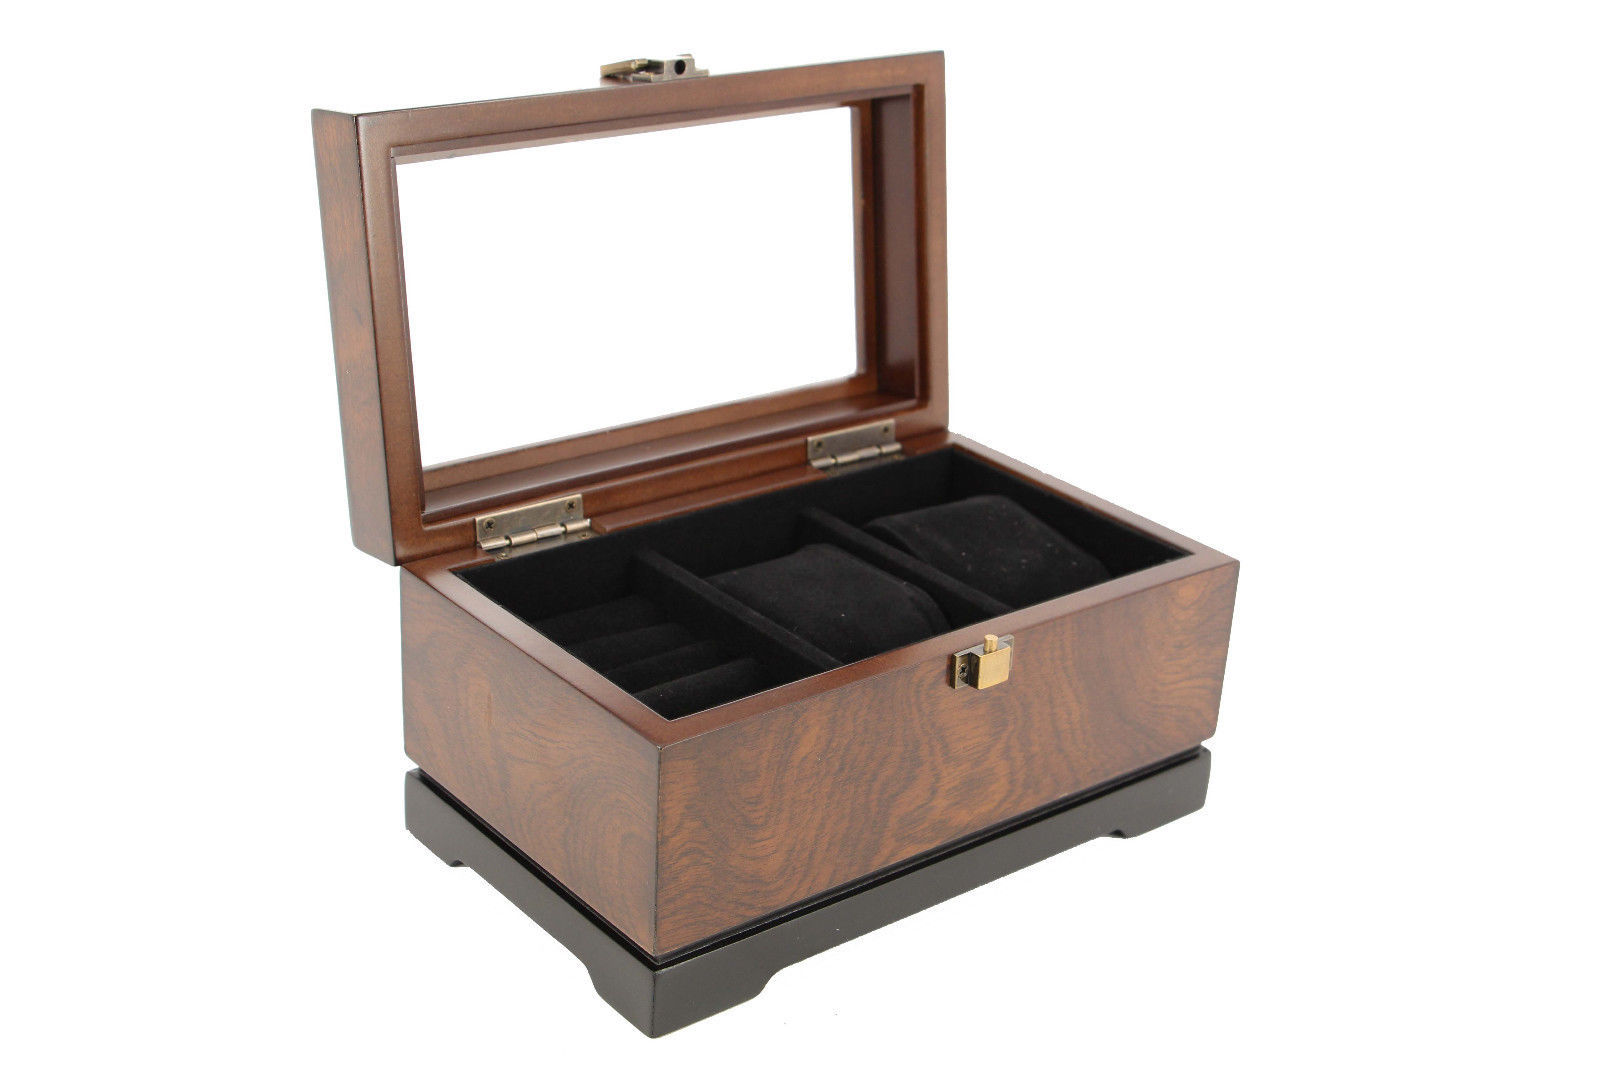 Bombay executive cufflink case watch storage organizer for Men s jewelry box for watches and cufflinks